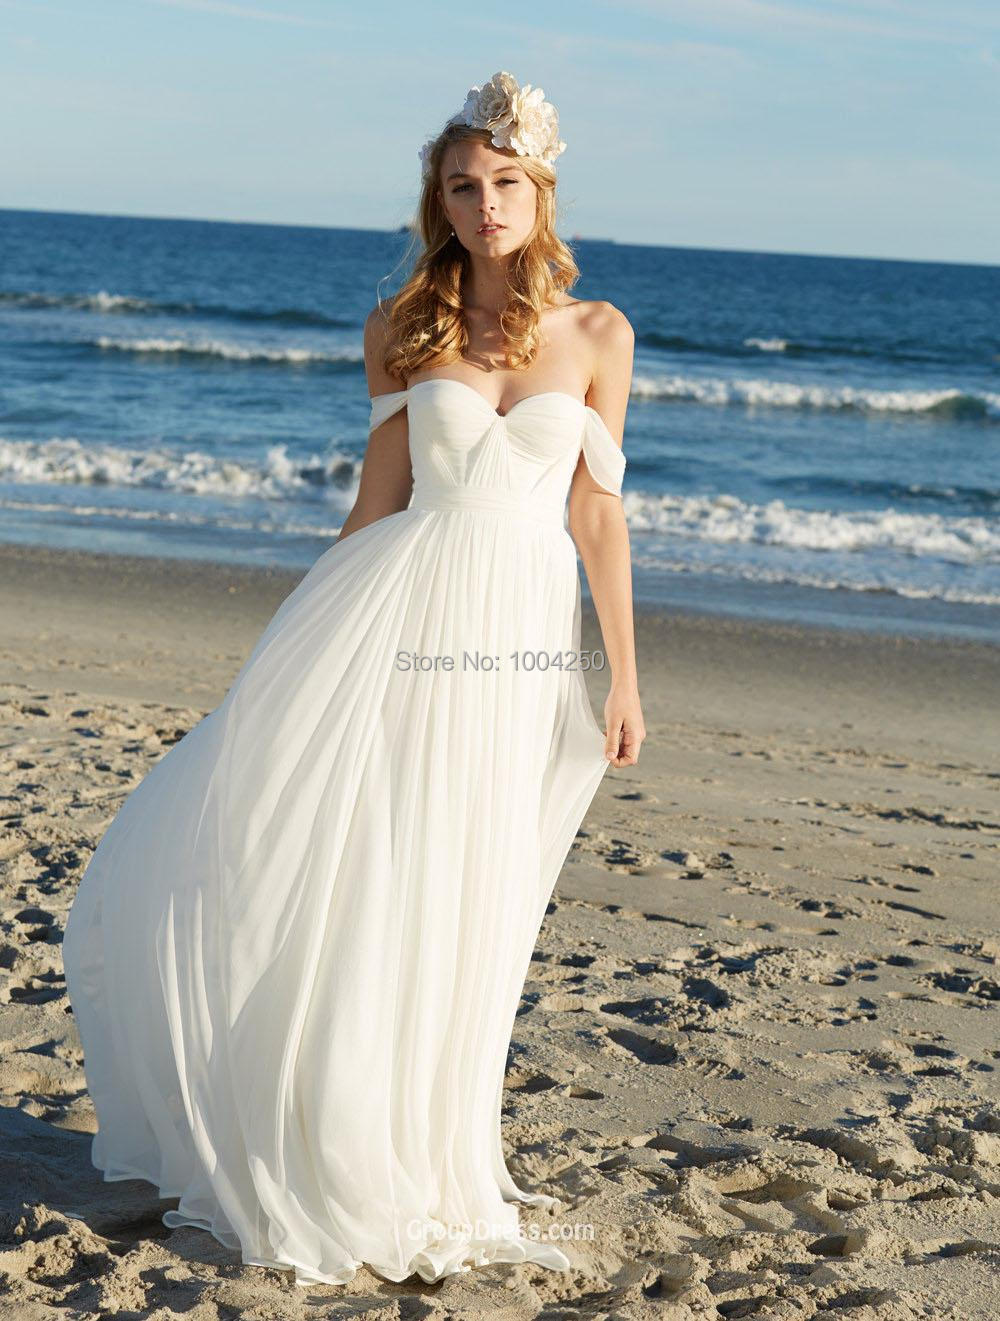 short beach v neckline wedding dress with short sleeves short beach wedding dress short beach v neckline wedding dress with short sleeves